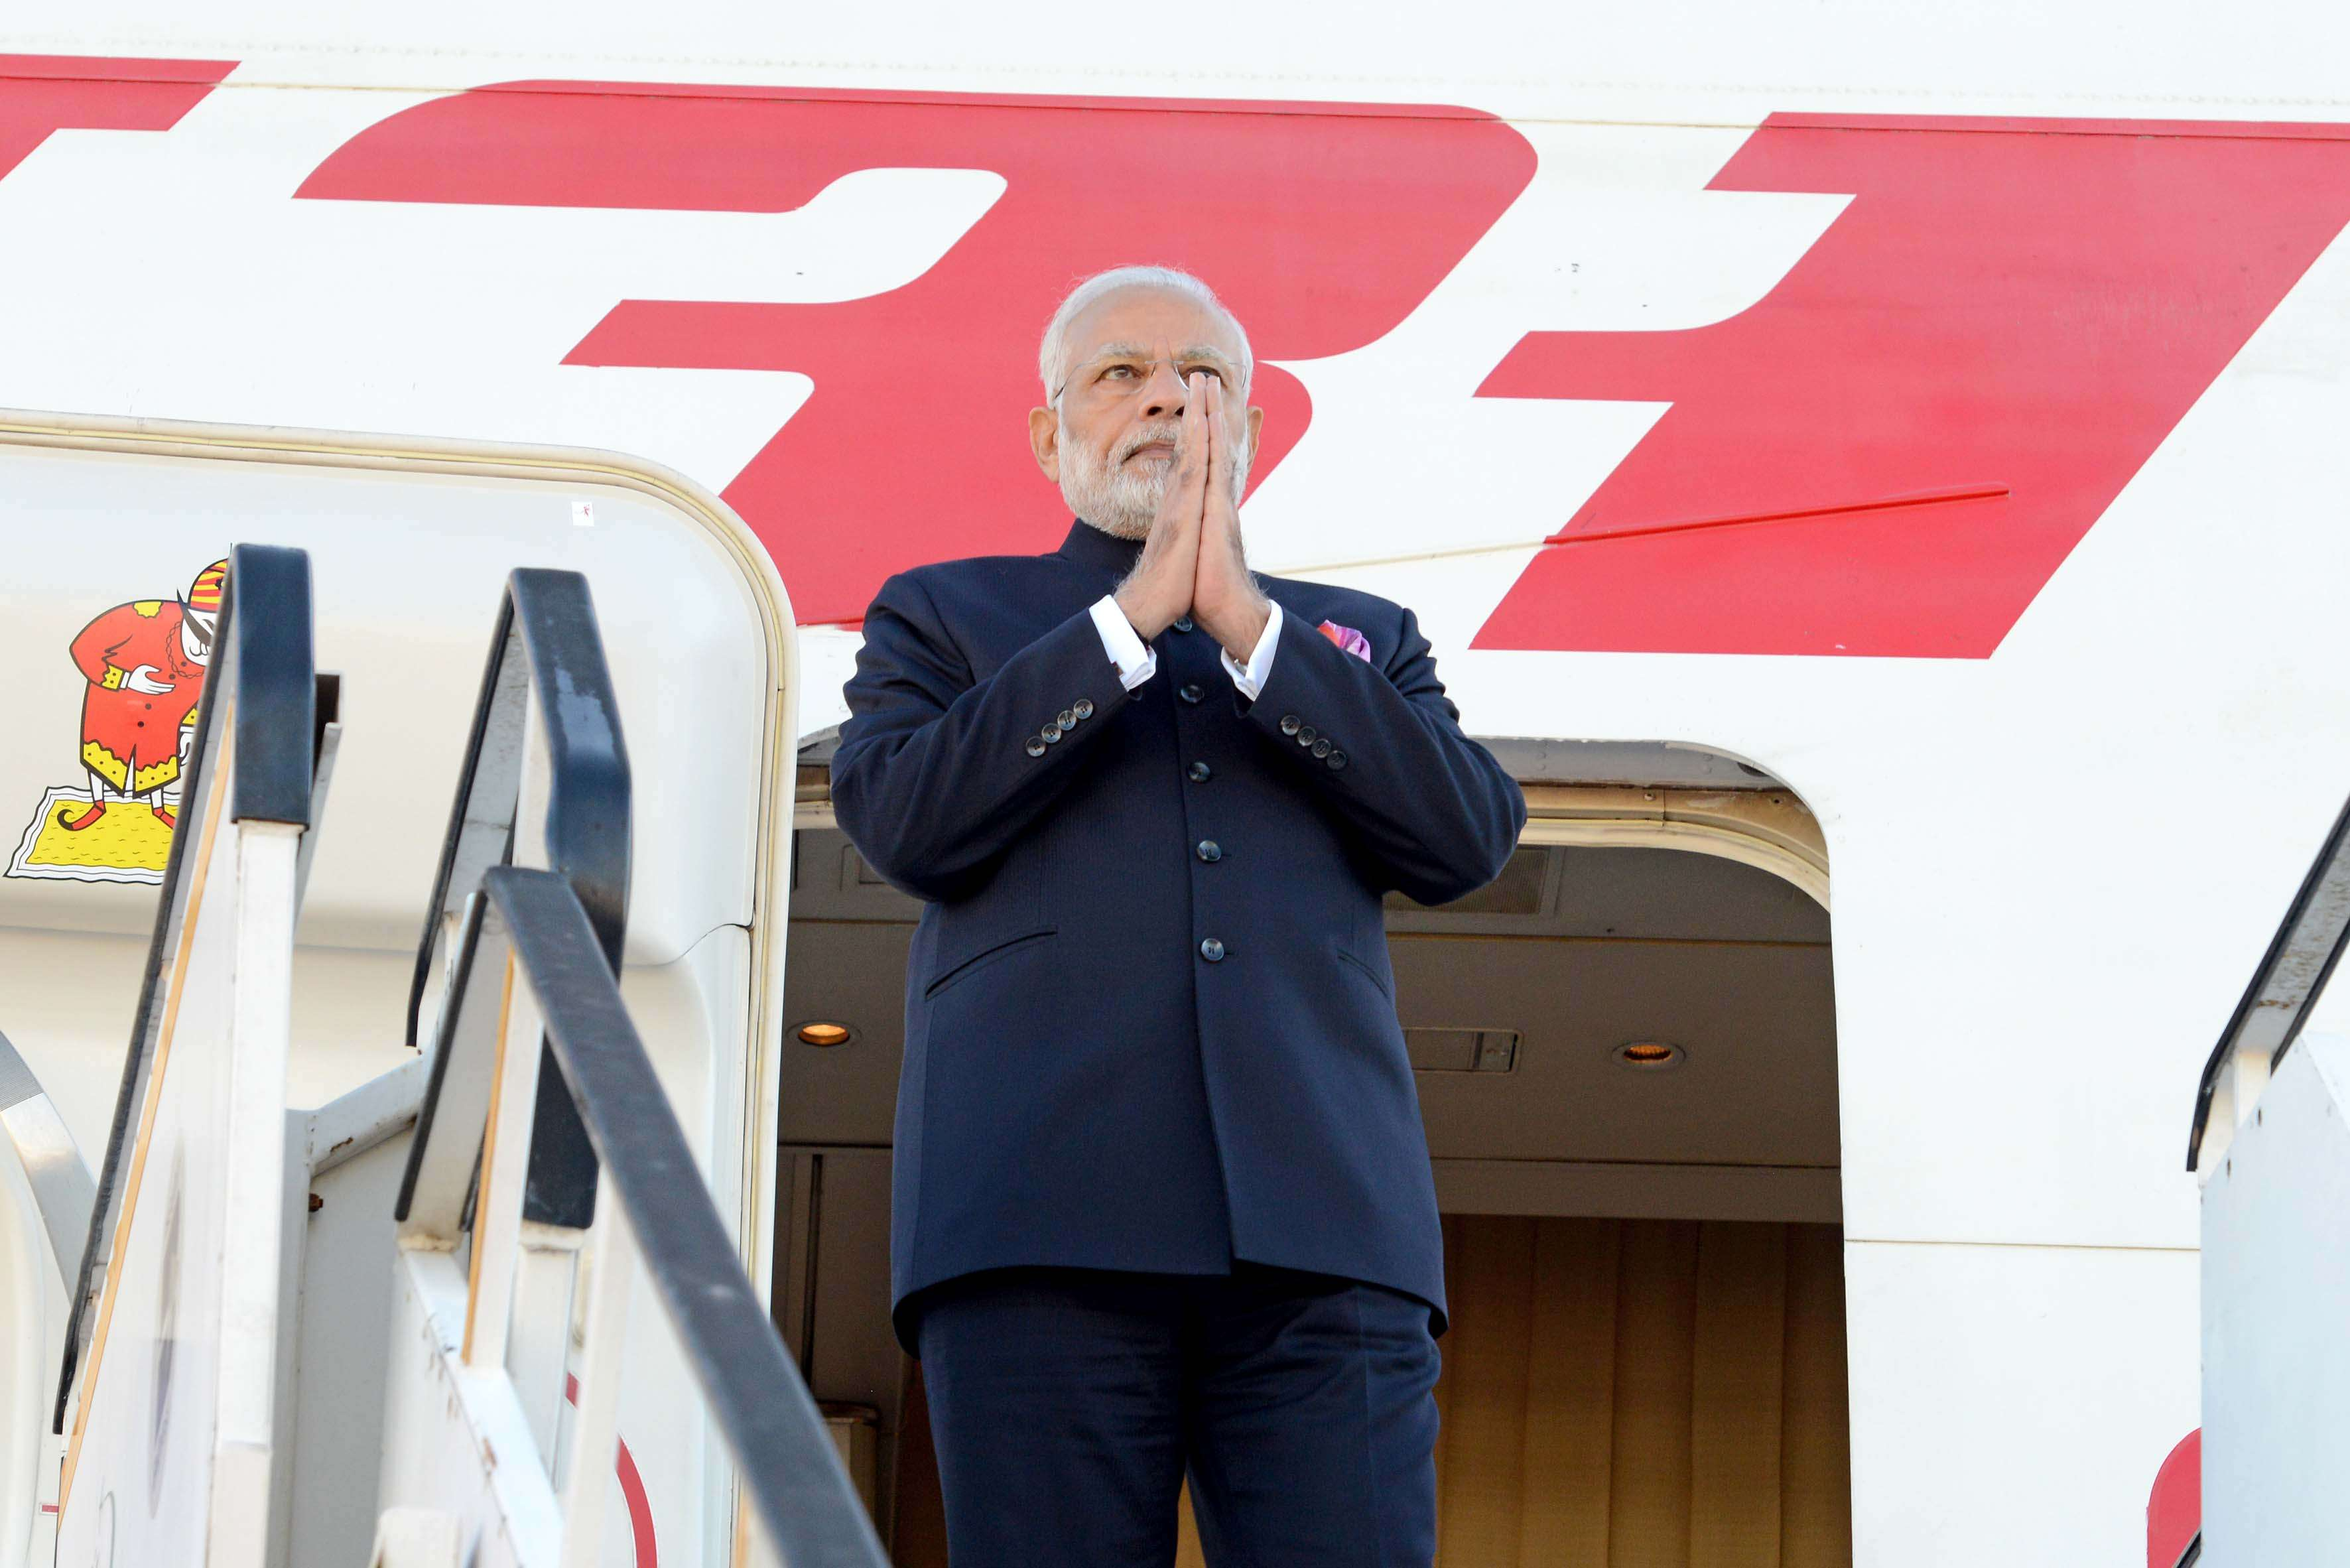 Indian Prime Minister Narendra Modi arrives at Waterkloof Air Force Base in Pretoria, South Africa on July 25, 2018 to attend the BRICS Summit. (Image Credit: Government of South Africa/Flickr)